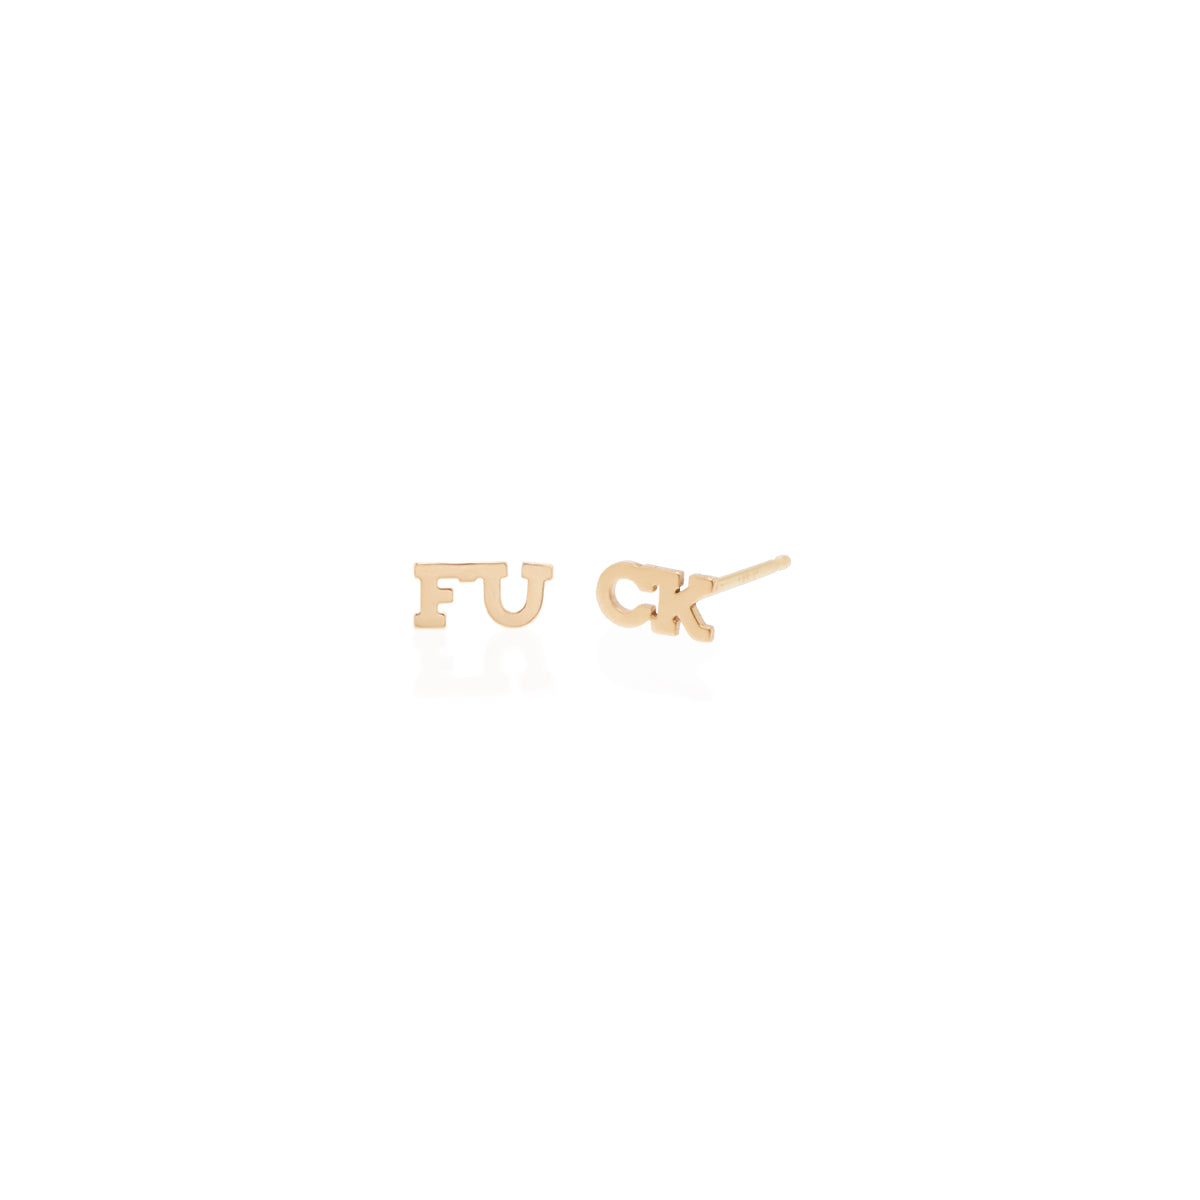 Zoë Chicco 14k Yellow Gold Itty Bitty Split FUCK Stud Earrings